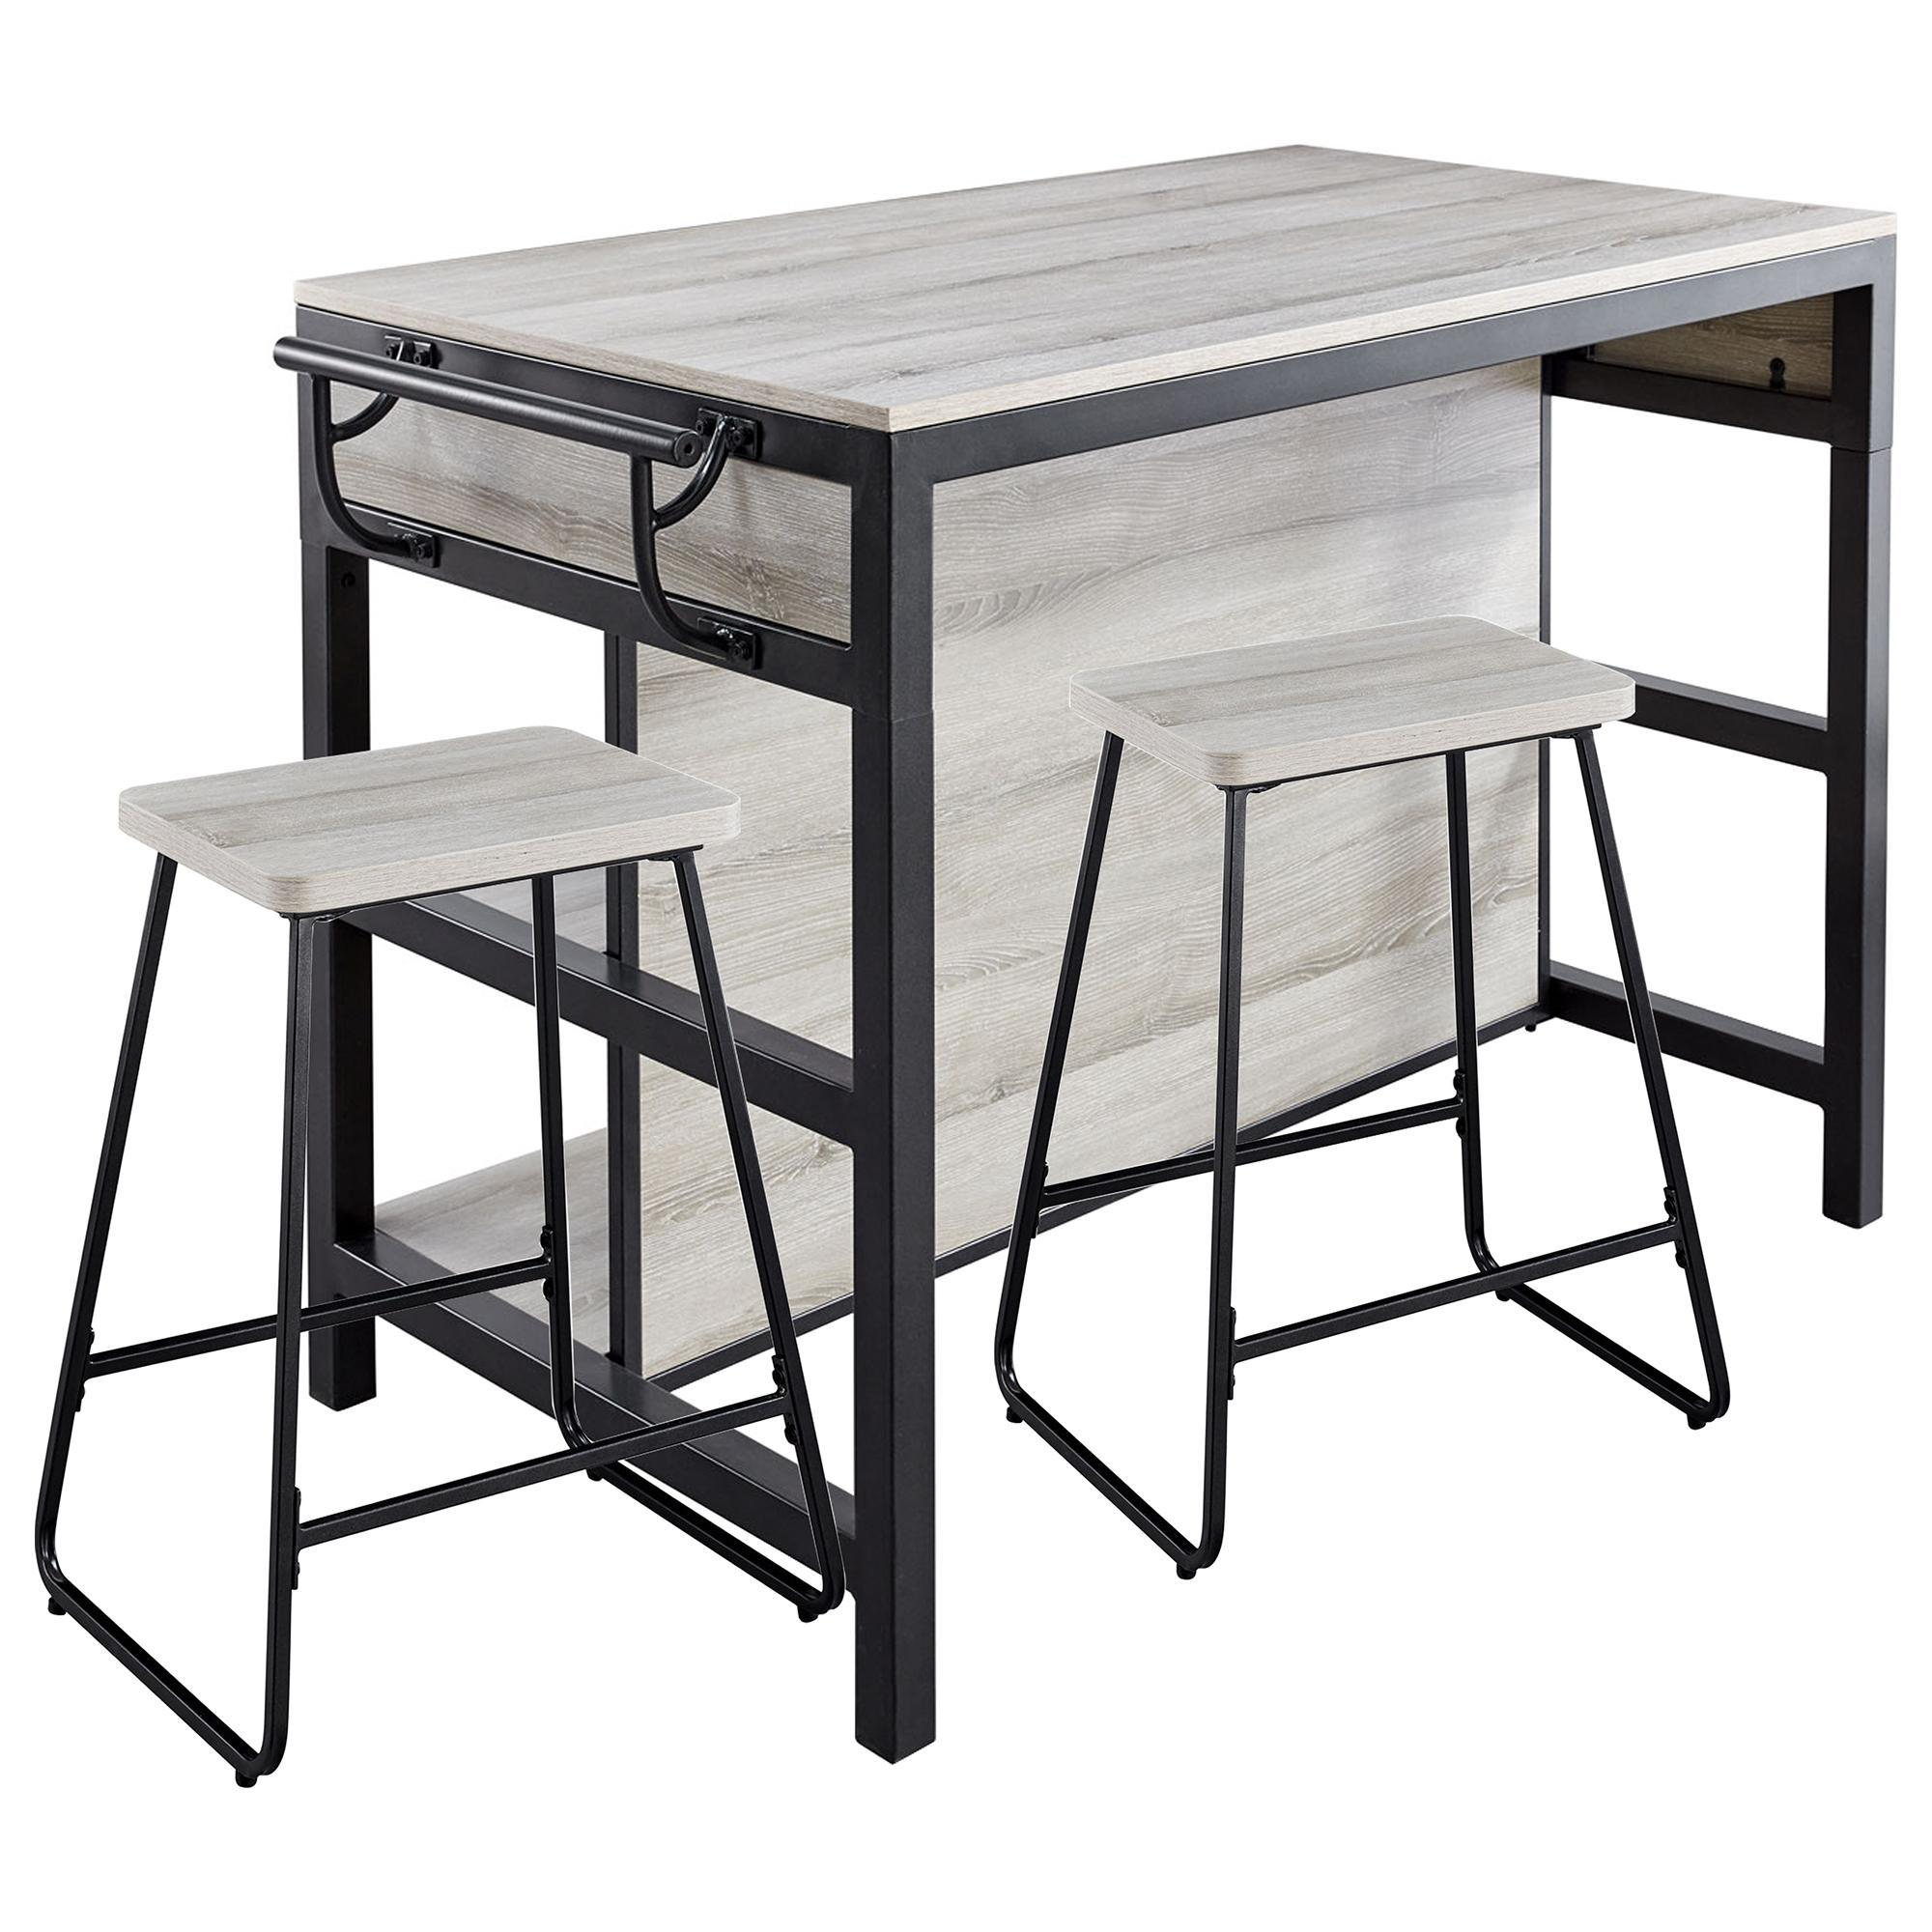 Steve Silver Carson Kitchen Island With 2 Stools In Driftwood And Black Nebraska Furniture Mart